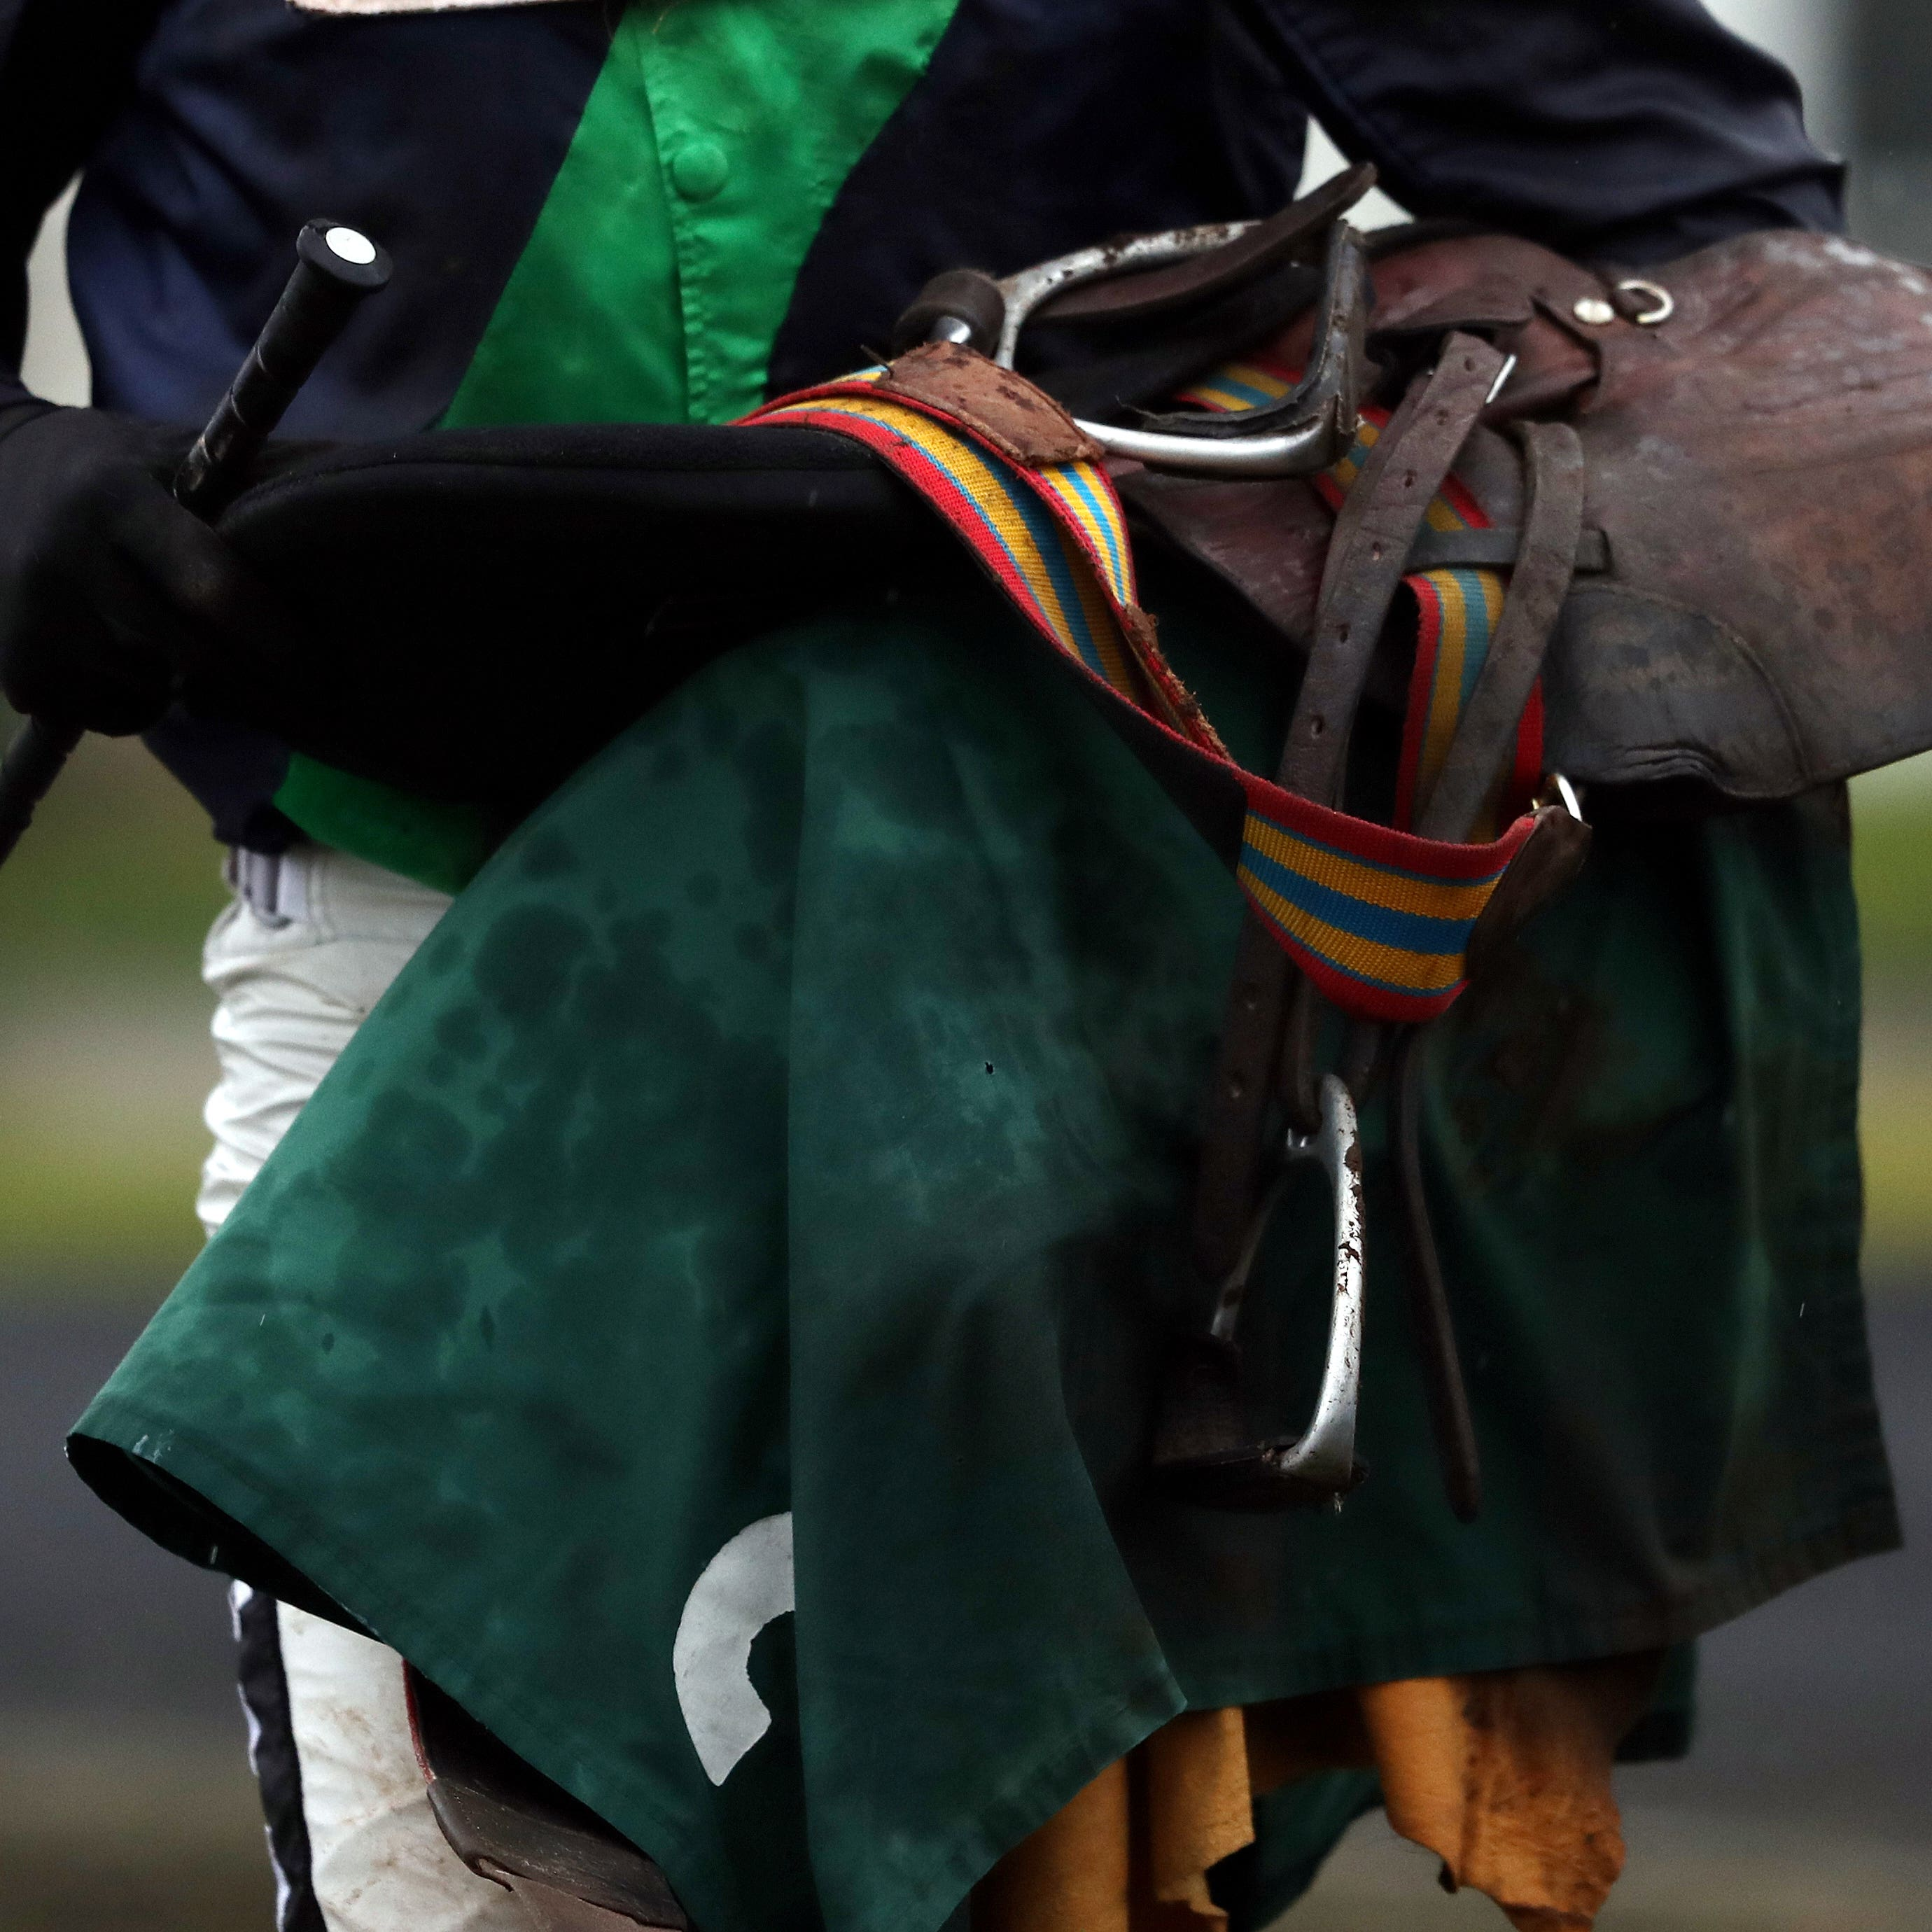 Jockeys valets have been hit hard by the shutdown